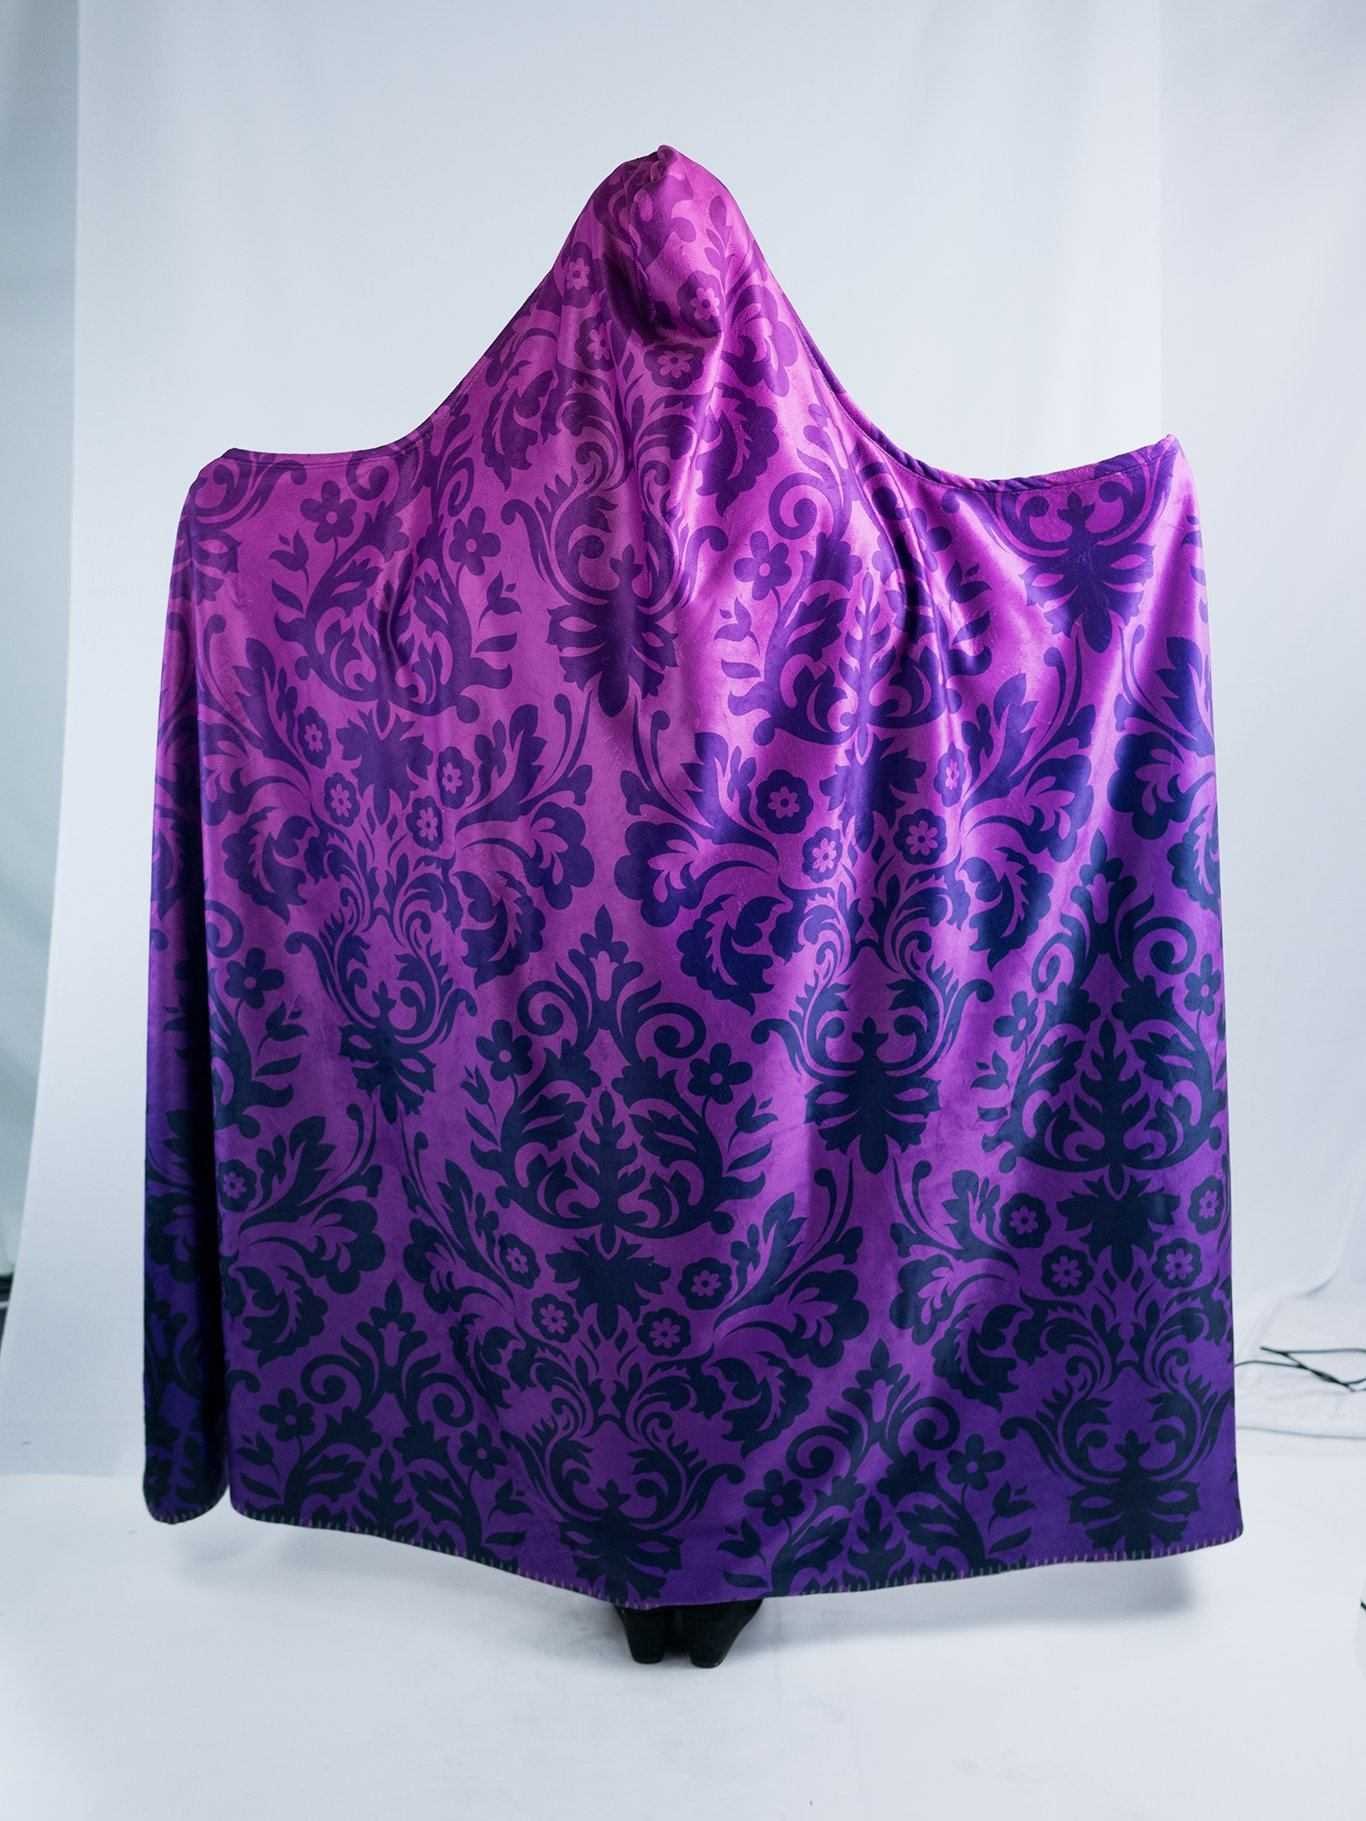 Camp Blanket Purple Luxe Hooded Blanket Camping Hiking Exploring Hooded Blanket Hooded Adventure Throw Gift for Mom